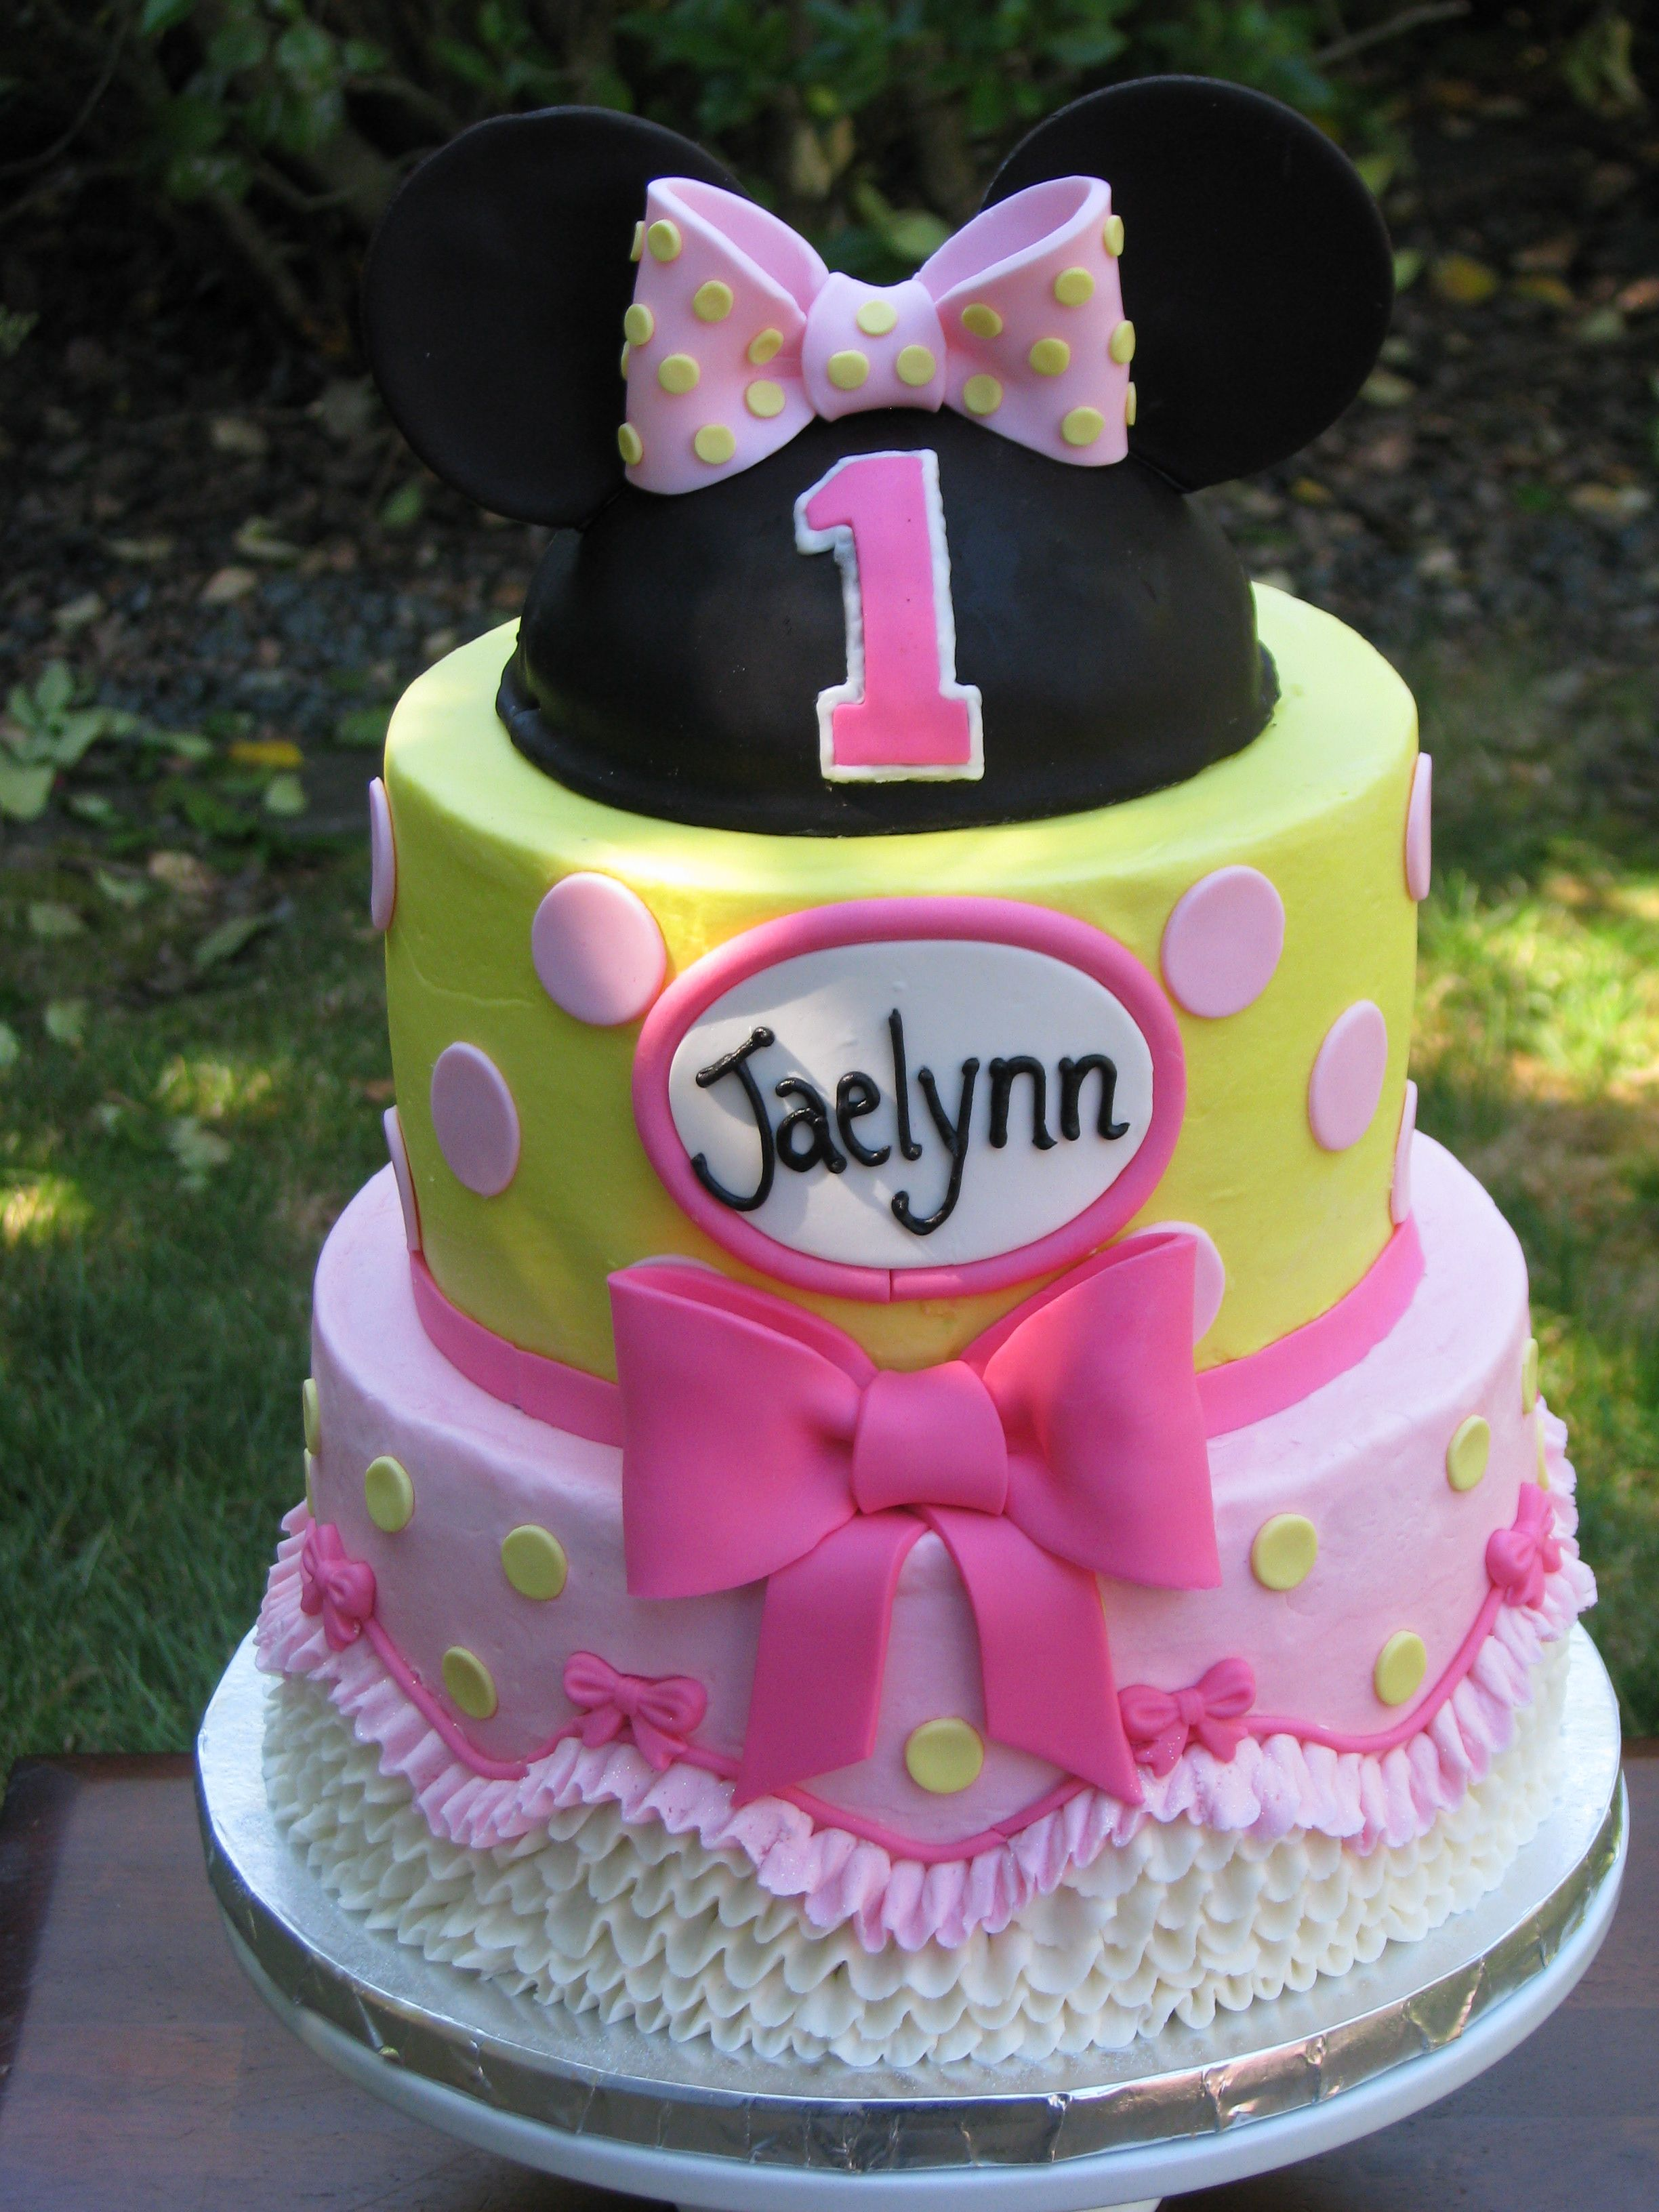 Minnie Mouse Birthday Cake In Pink And Yellow